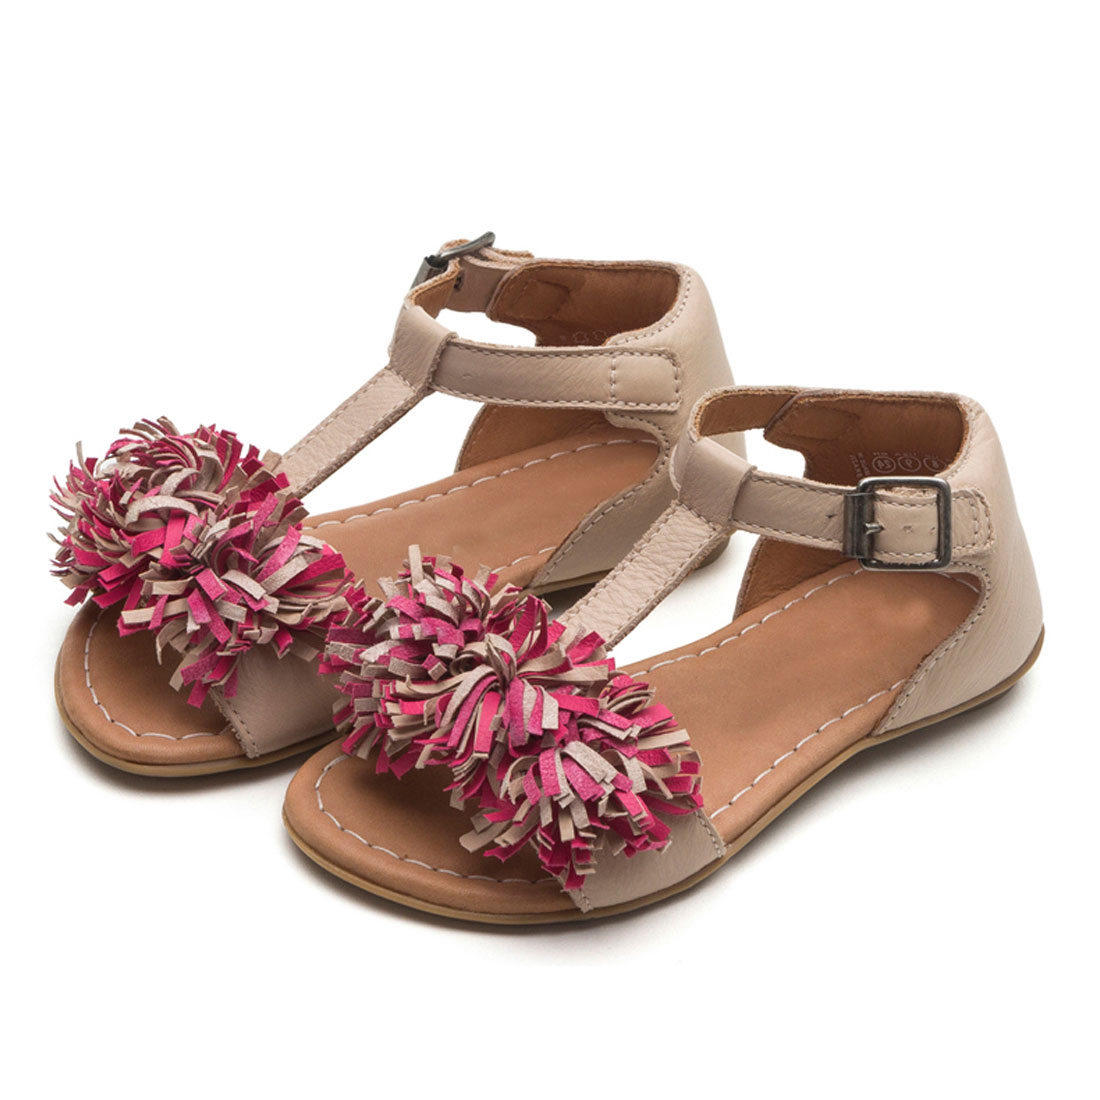 21168c7915687 China Wholesale Leather Tassel Flower Kids Baby Girl Summer Sandal Shoes  KD0114